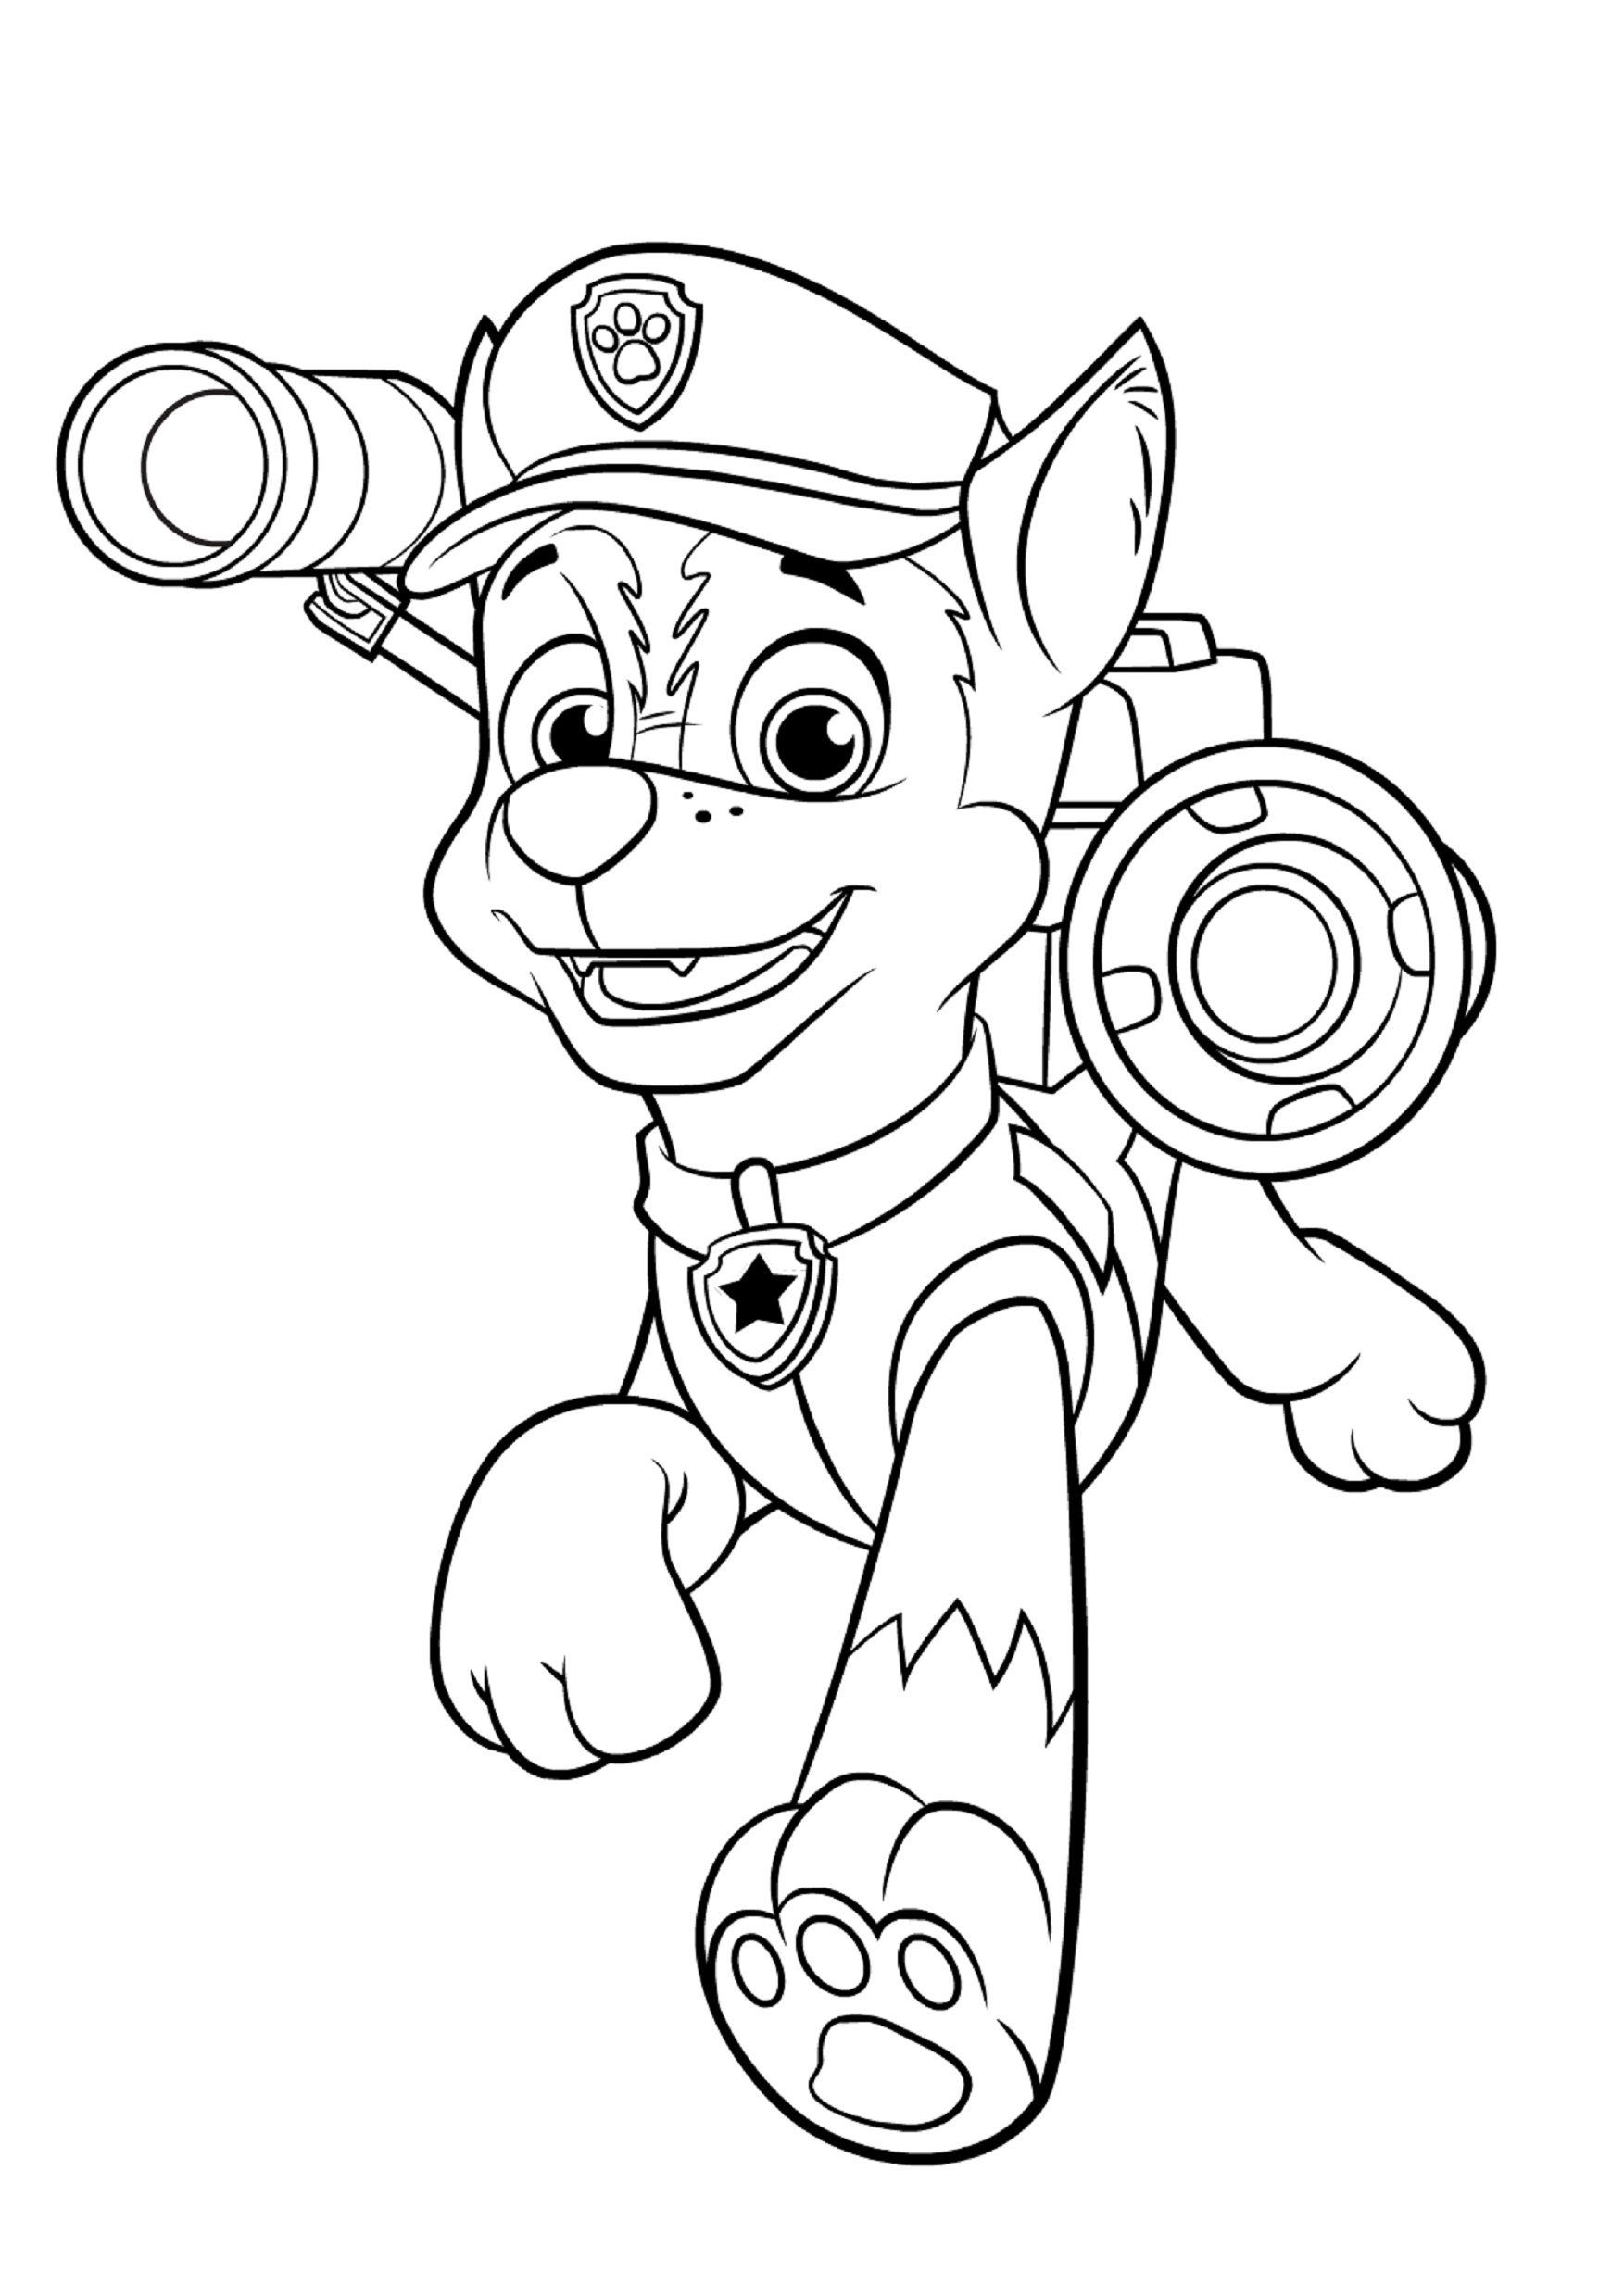 paw patrol coloring pages paw patrol coloring pages coloring home paw patrol pages coloring